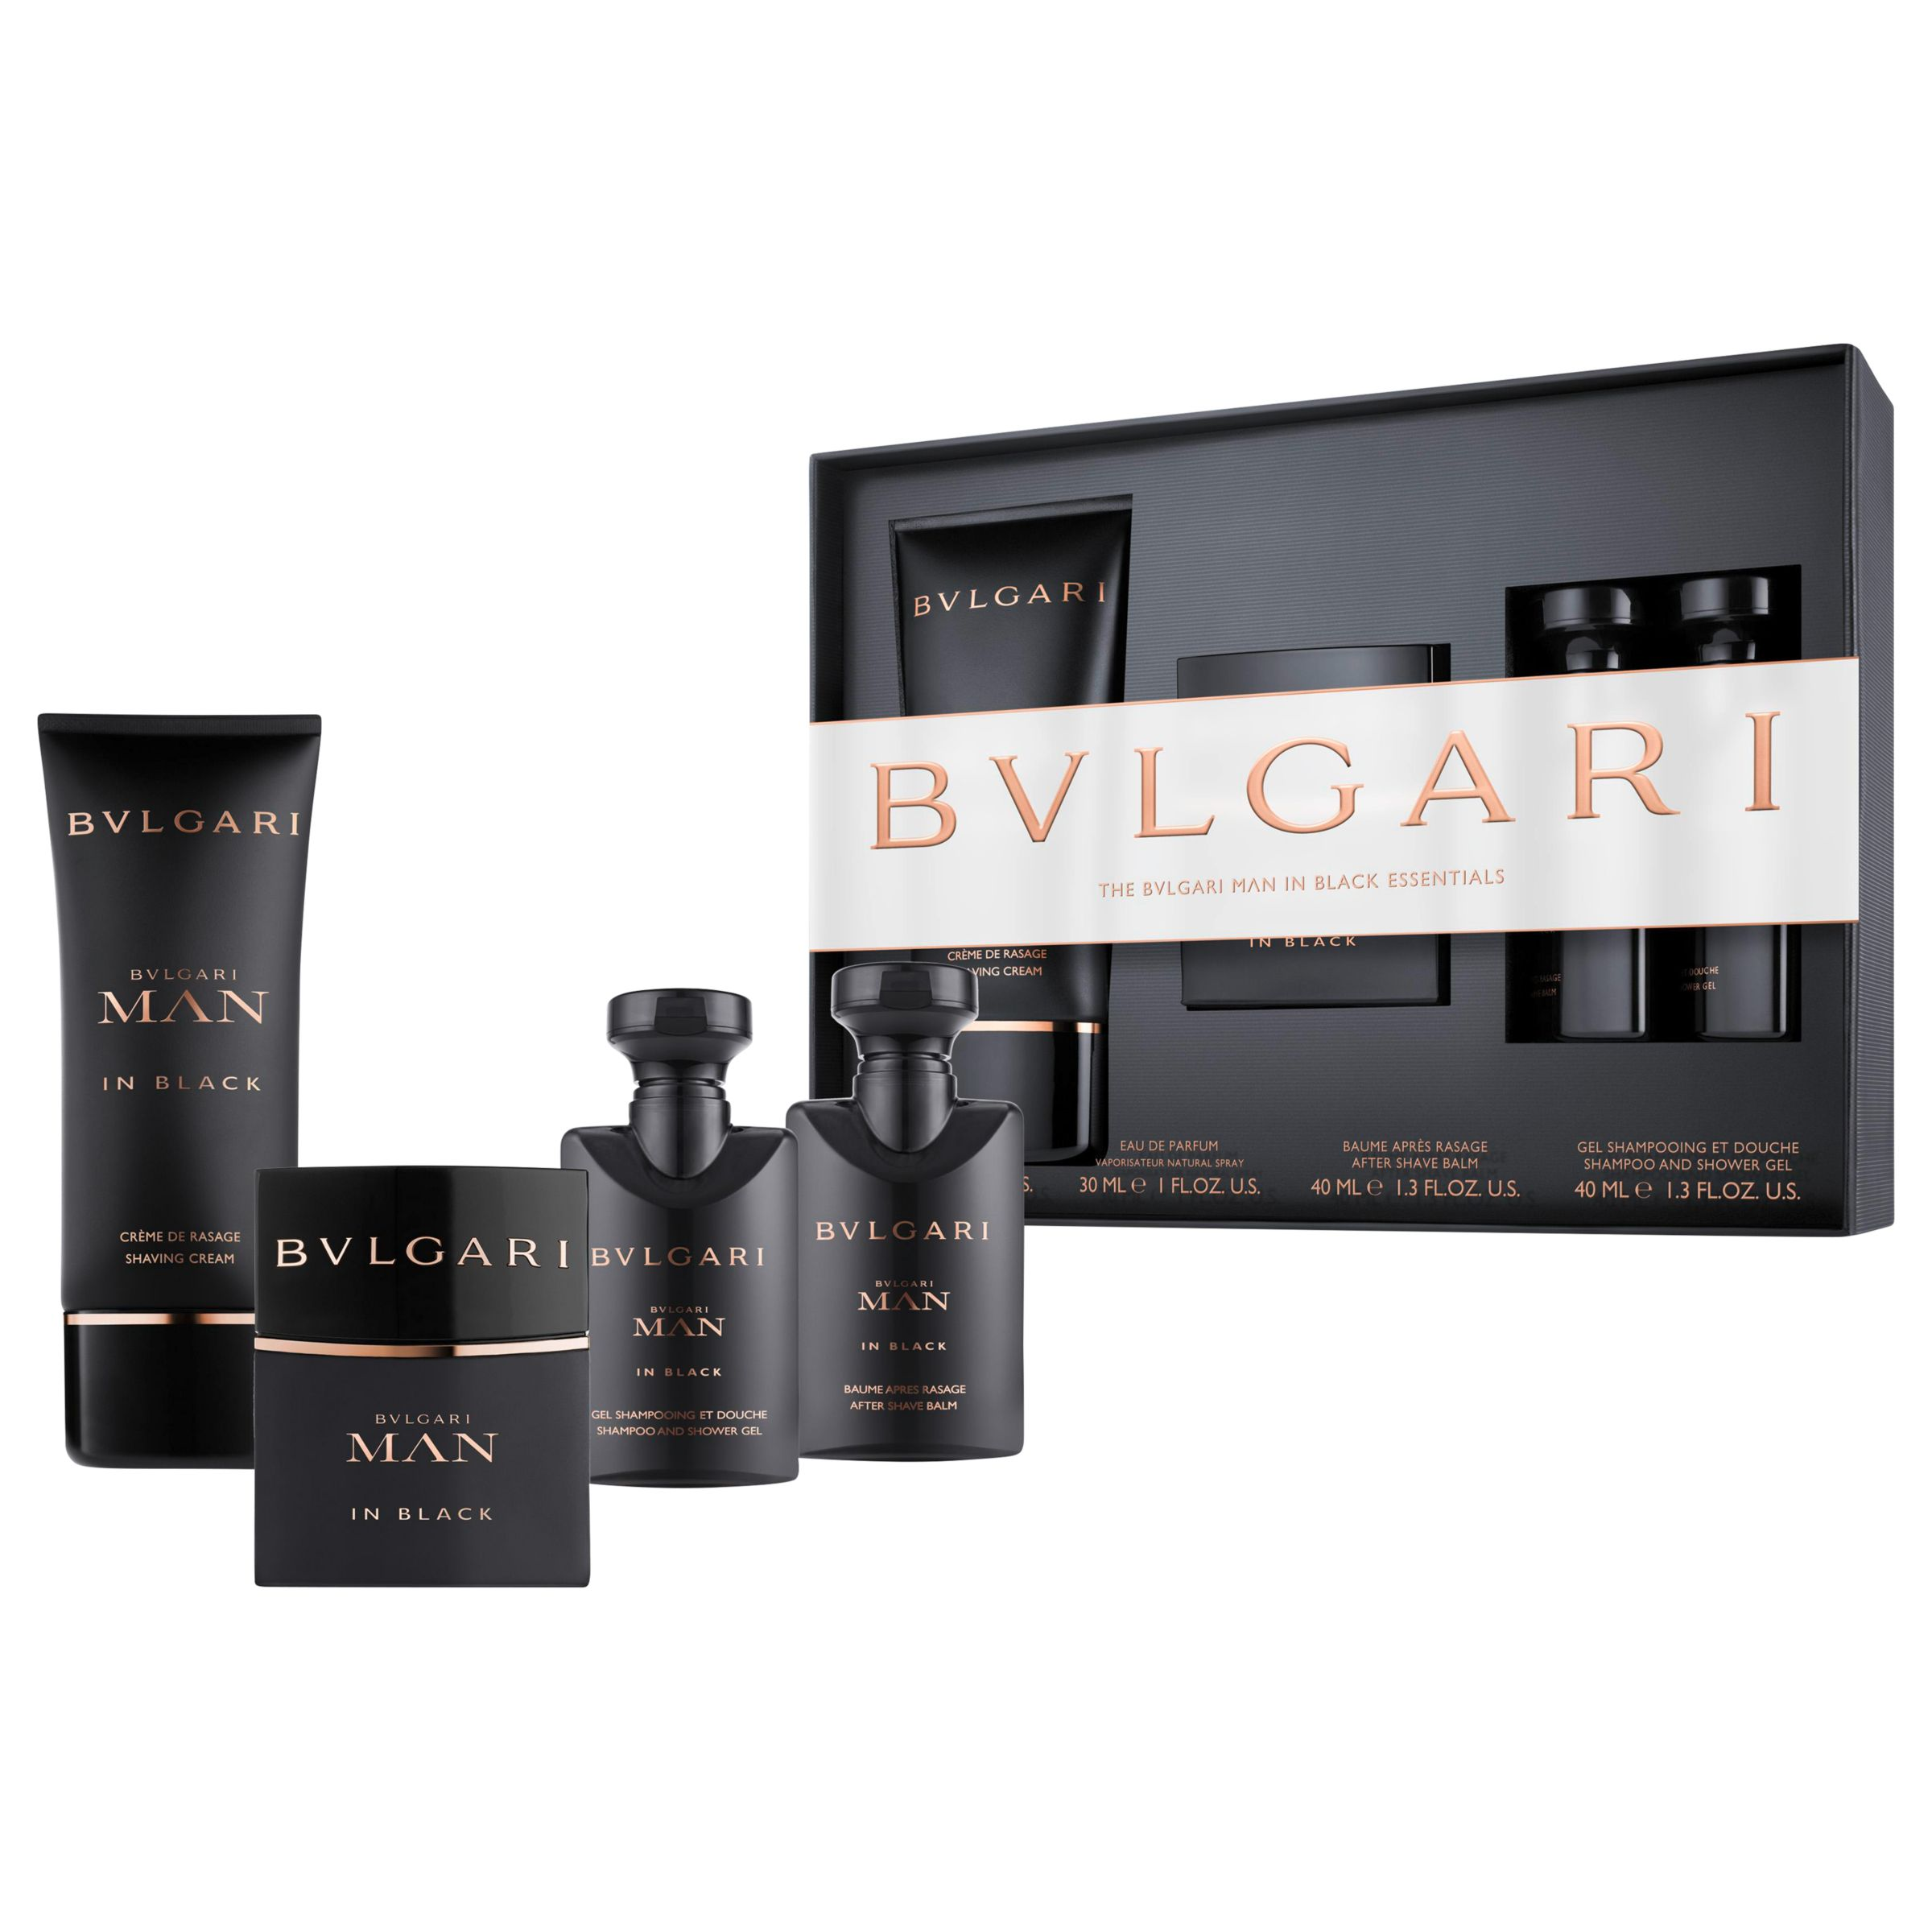 BVLGARI Man In Black 30ml Eau de Parfum